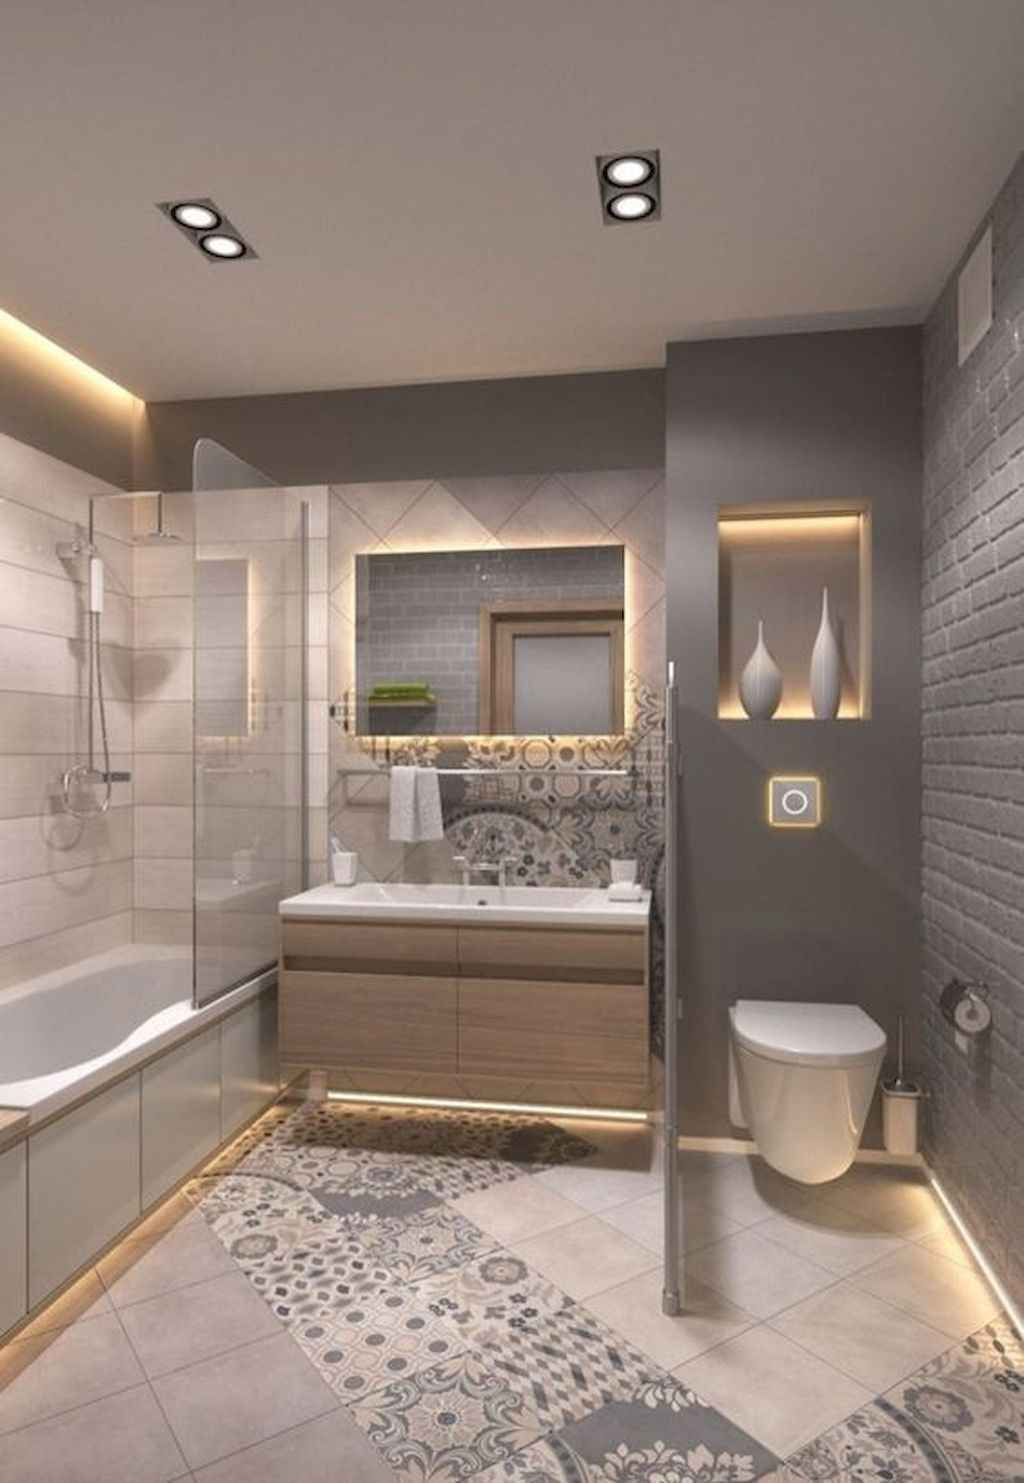 A Comprehensive Overview On Home Decoration In 2020 Small Master Bathroom Bathroom Remodel Master Bathrooms Remodel